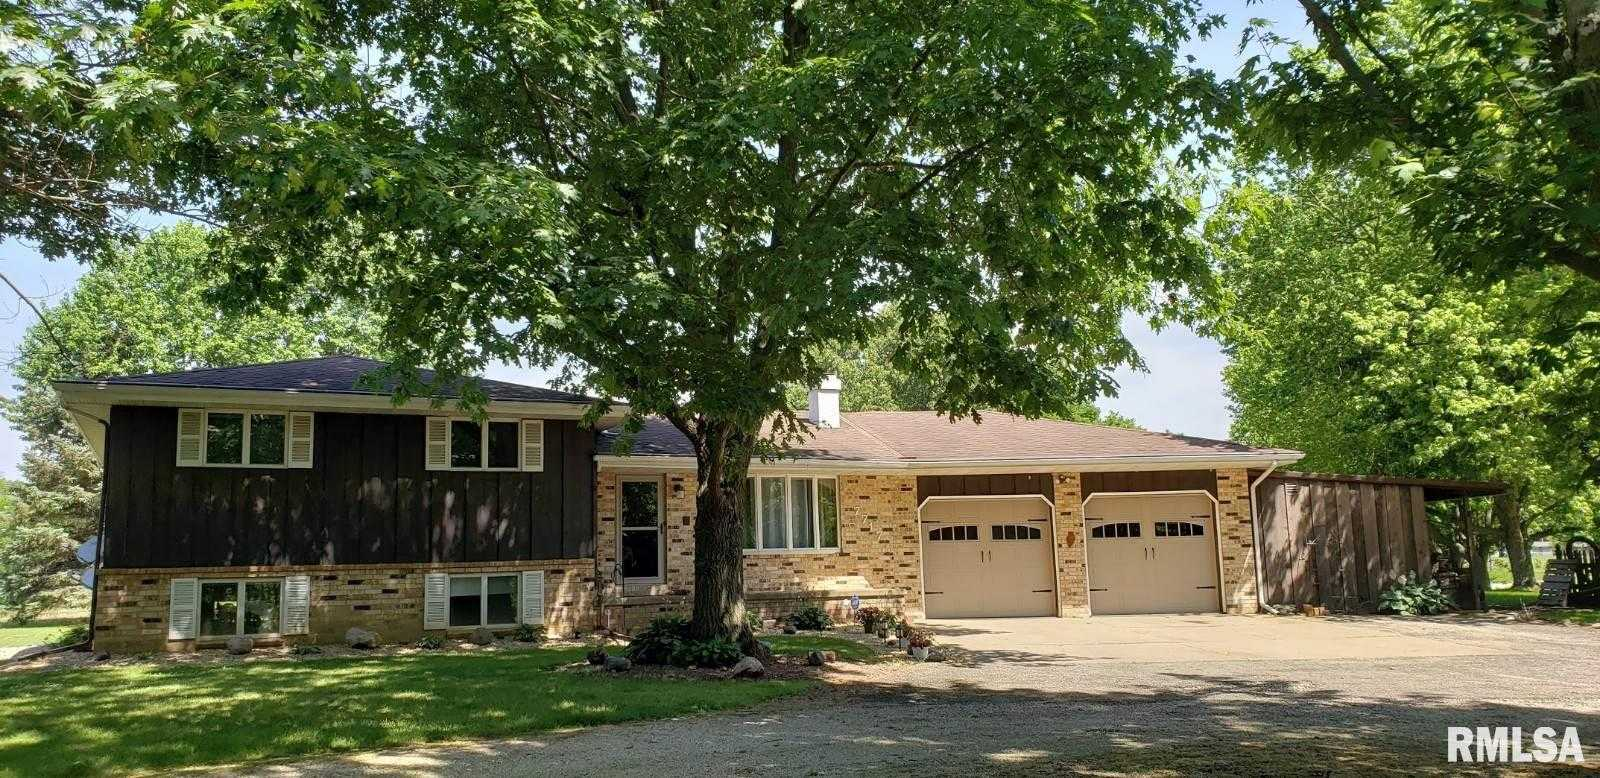 $219,900 - 3Br/3Ba -  for Sale in Metes & Bounds, Mapleton